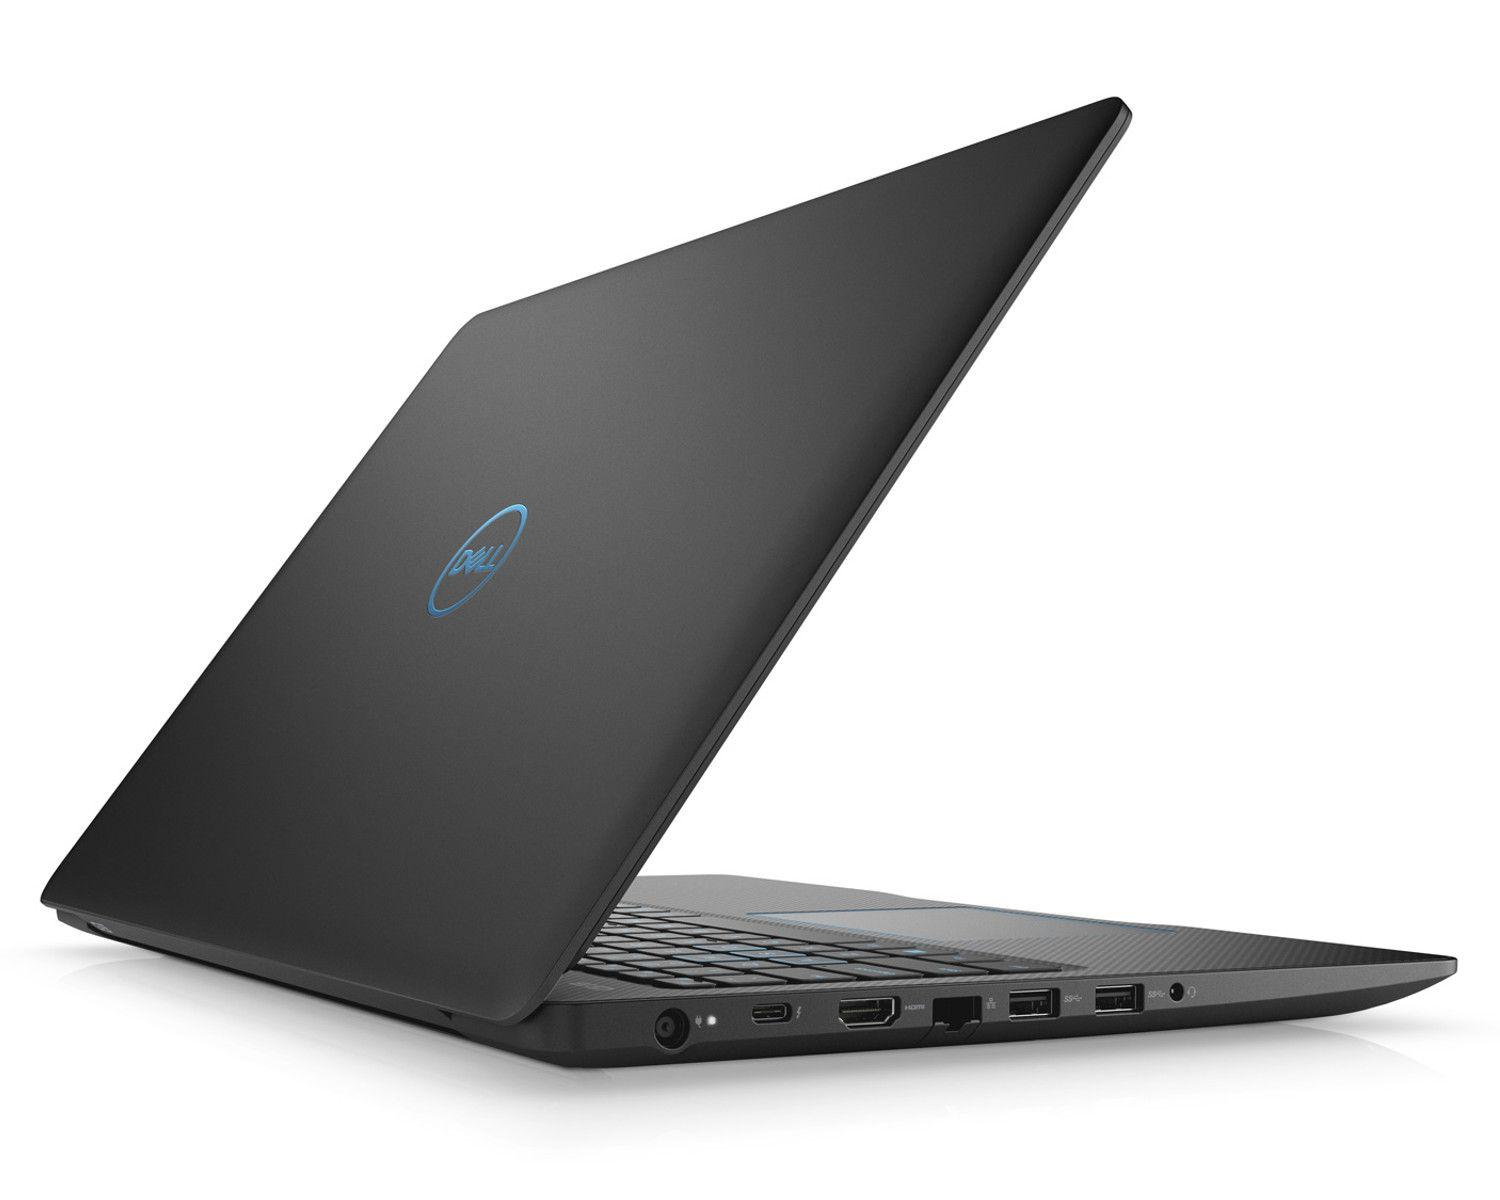 Ordinateur portable Dell Inspiron Gaming G3 17 3779 1901 (LOKI-G-17CFL1901-209-P) Noir - GTX 1060, SSD, i5 - photo 4